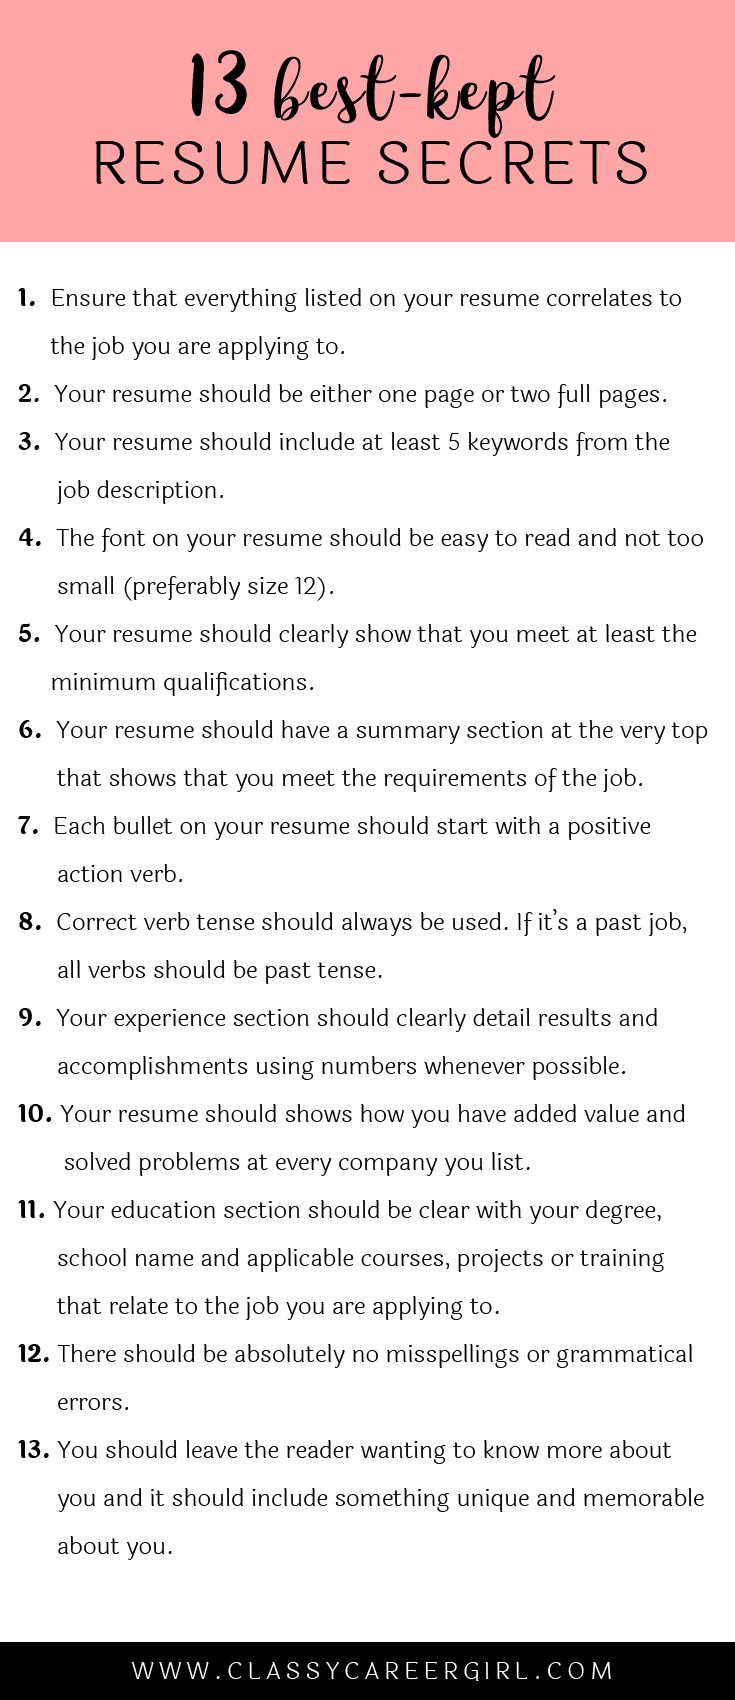 Opposenewapstandardsus  Pleasant  Ideas About Resume On Pinterest  Cv Format Resume  With Inspiring Some Hiring Managers Will Toss Your Resume Out If You Dont Know These  With Archaic Resume Computer Science Also Child Care Worker Resume In Addition Difference Between Resume And Cover Letter And Management Consultant Resume As Well As Writing The Perfect Resume Additionally Customer Service Representative Resume Sample From Pinterestcom With Opposenewapstandardsus  Inspiring  Ideas About Resume On Pinterest  Cv Format Resume  With Archaic Some Hiring Managers Will Toss Your Resume Out If You Dont Know These  And Pleasant Resume Computer Science Also Child Care Worker Resume In Addition Difference Between Resume And Cover Letter From Pinterestcom